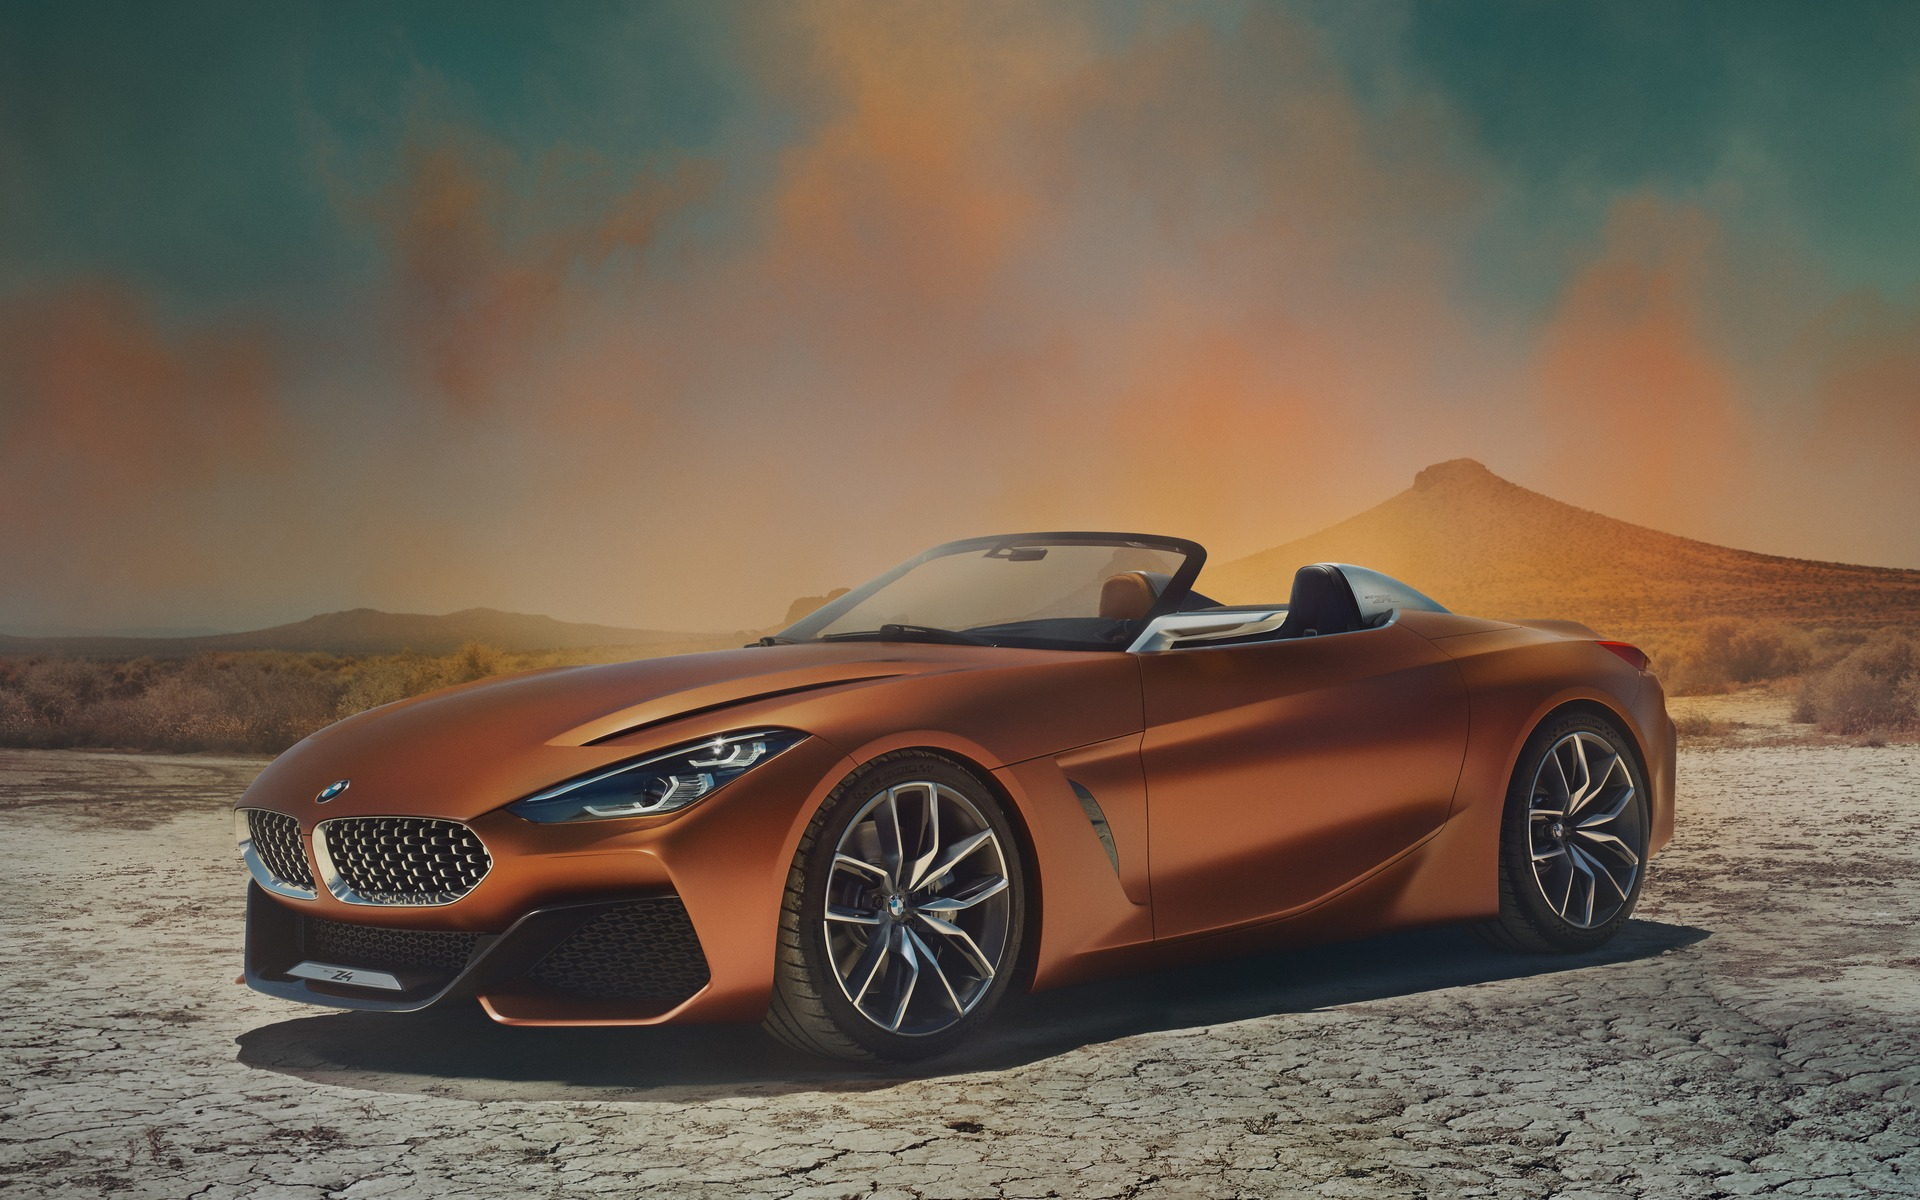 Bmw Concept Z4 Unveiled At Pebble Beach 1 26